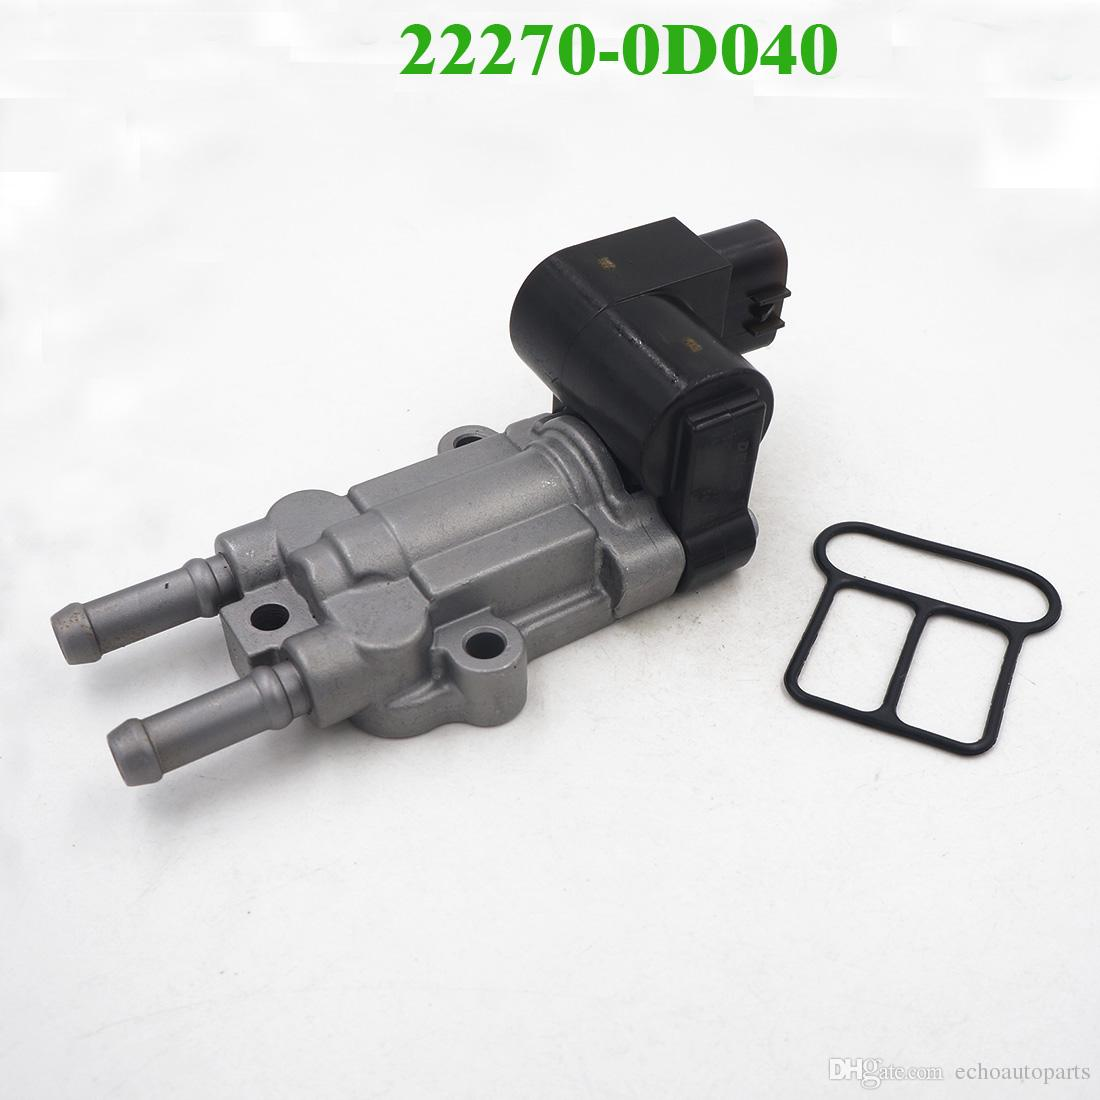 High Quality 22270-0D040 Idle Air Control Valve Fits Vibe Toyota Corolla  Matrix 2003-2006